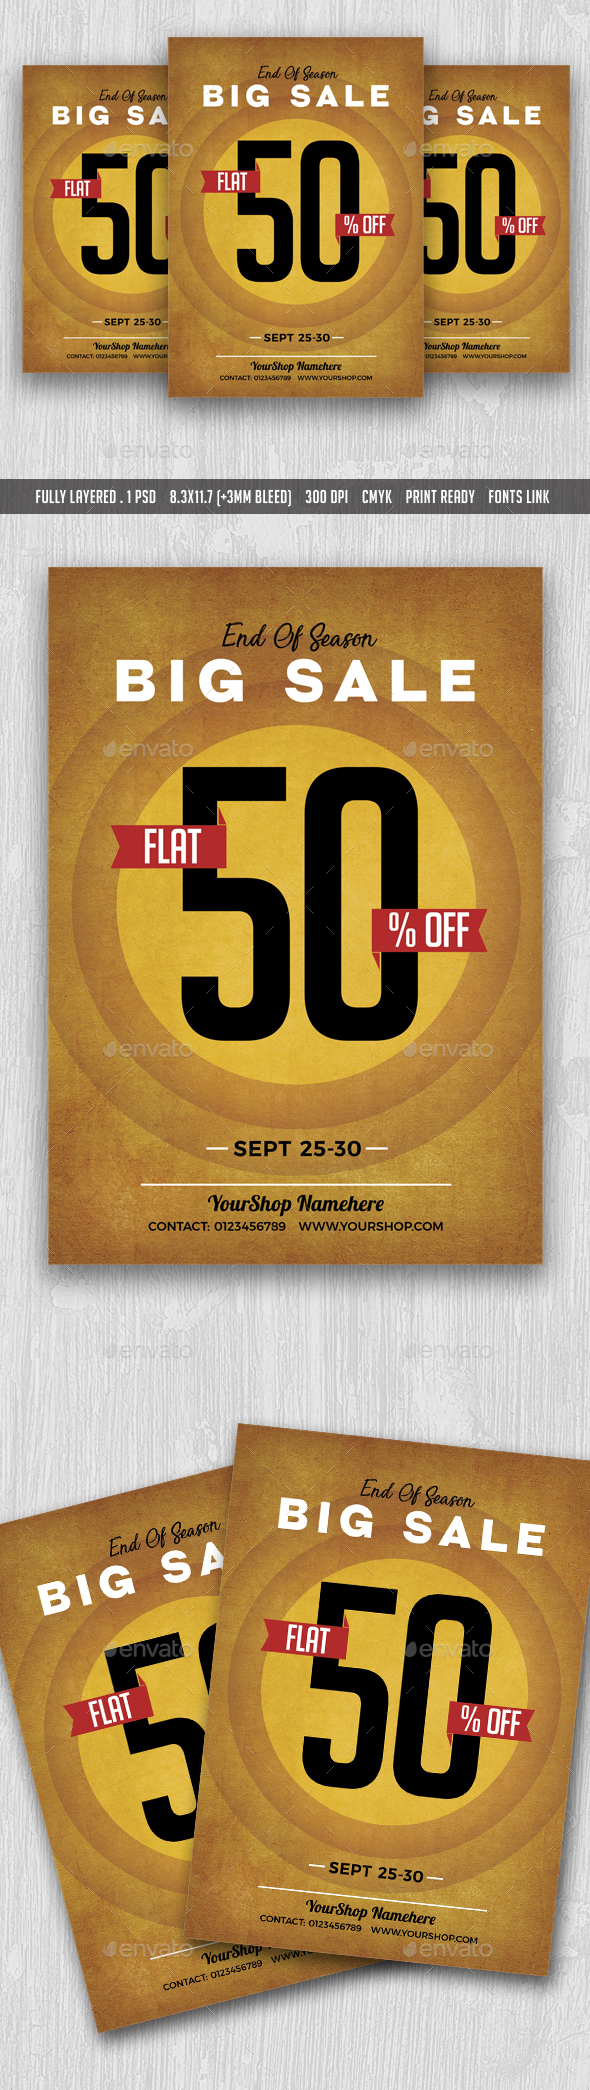 Big Sale Flyer Poster - Flyers Print Templates